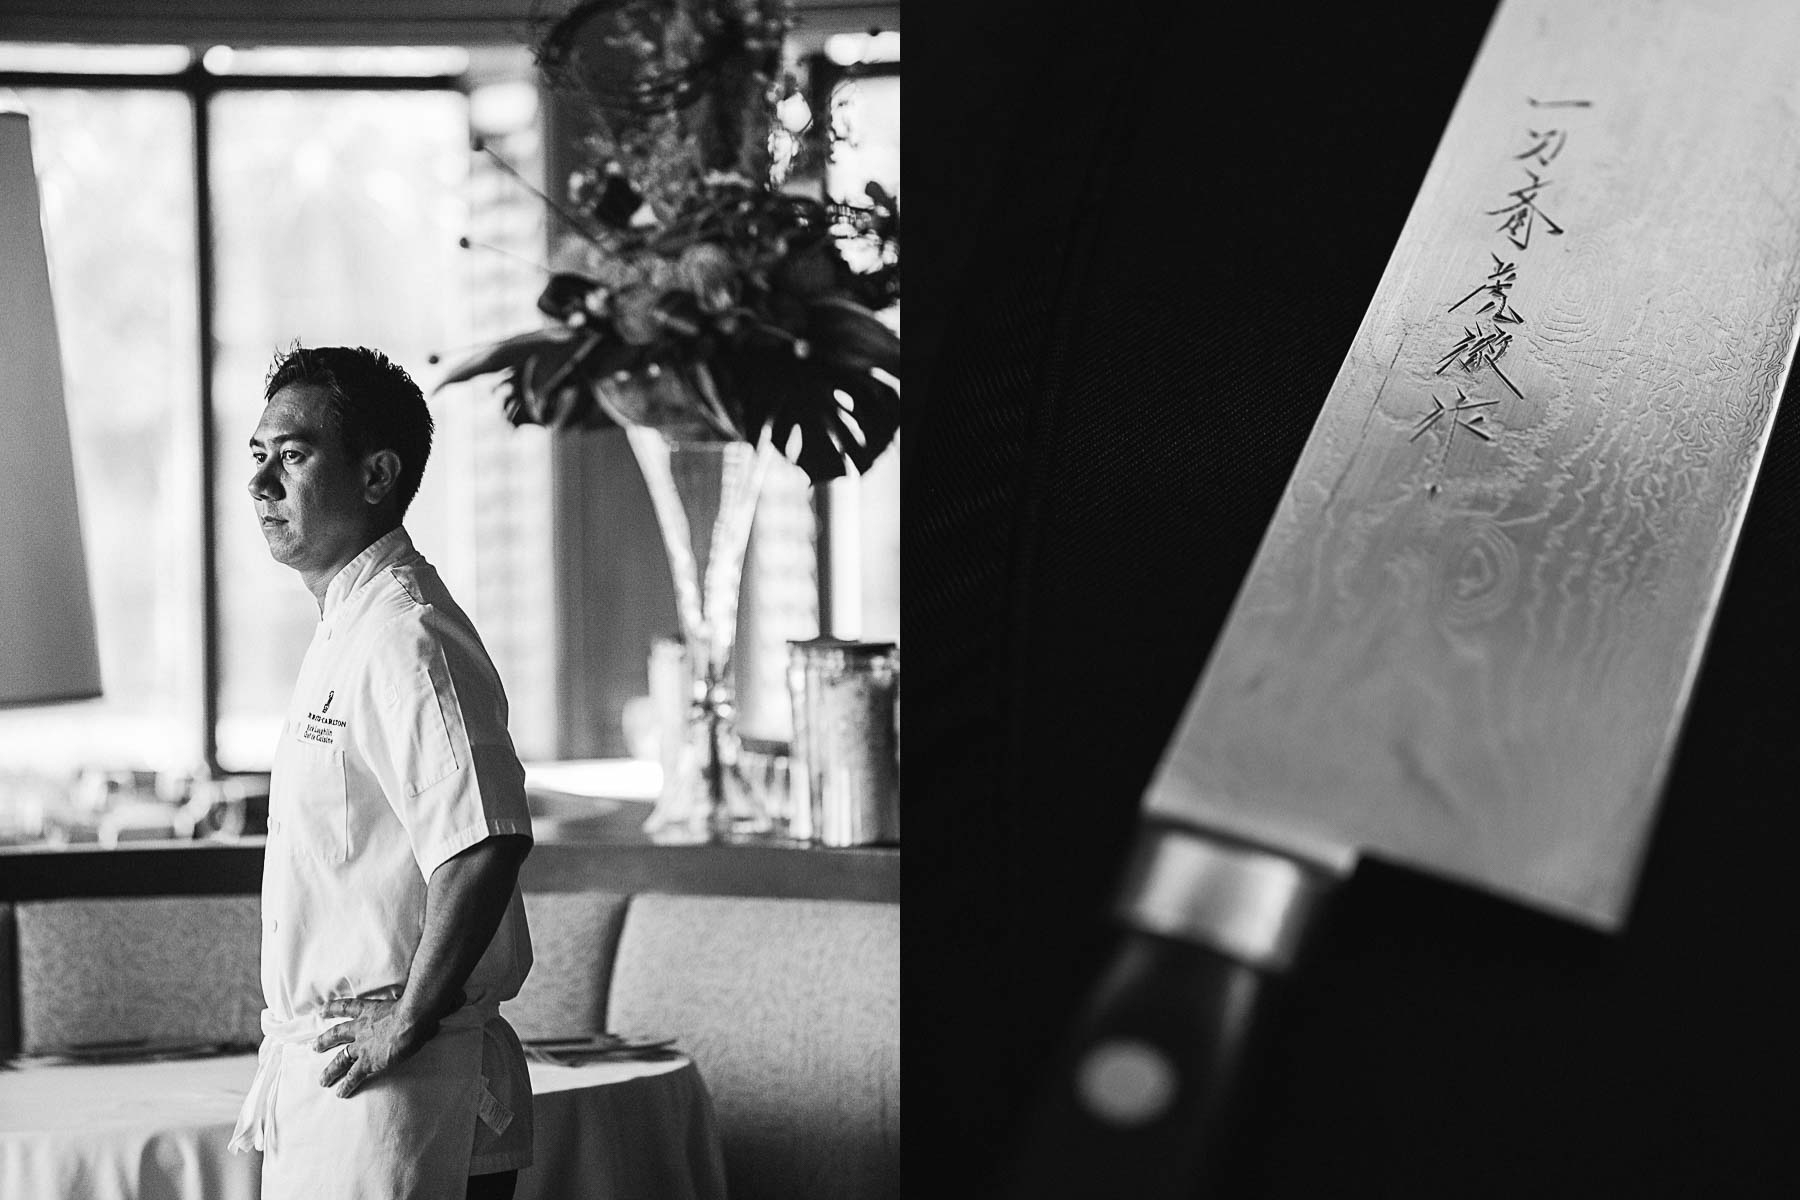 Portrait of Chef Rick Laughlin at Salt restaurant Ritz-Carlton, Amelia Island, Florida.